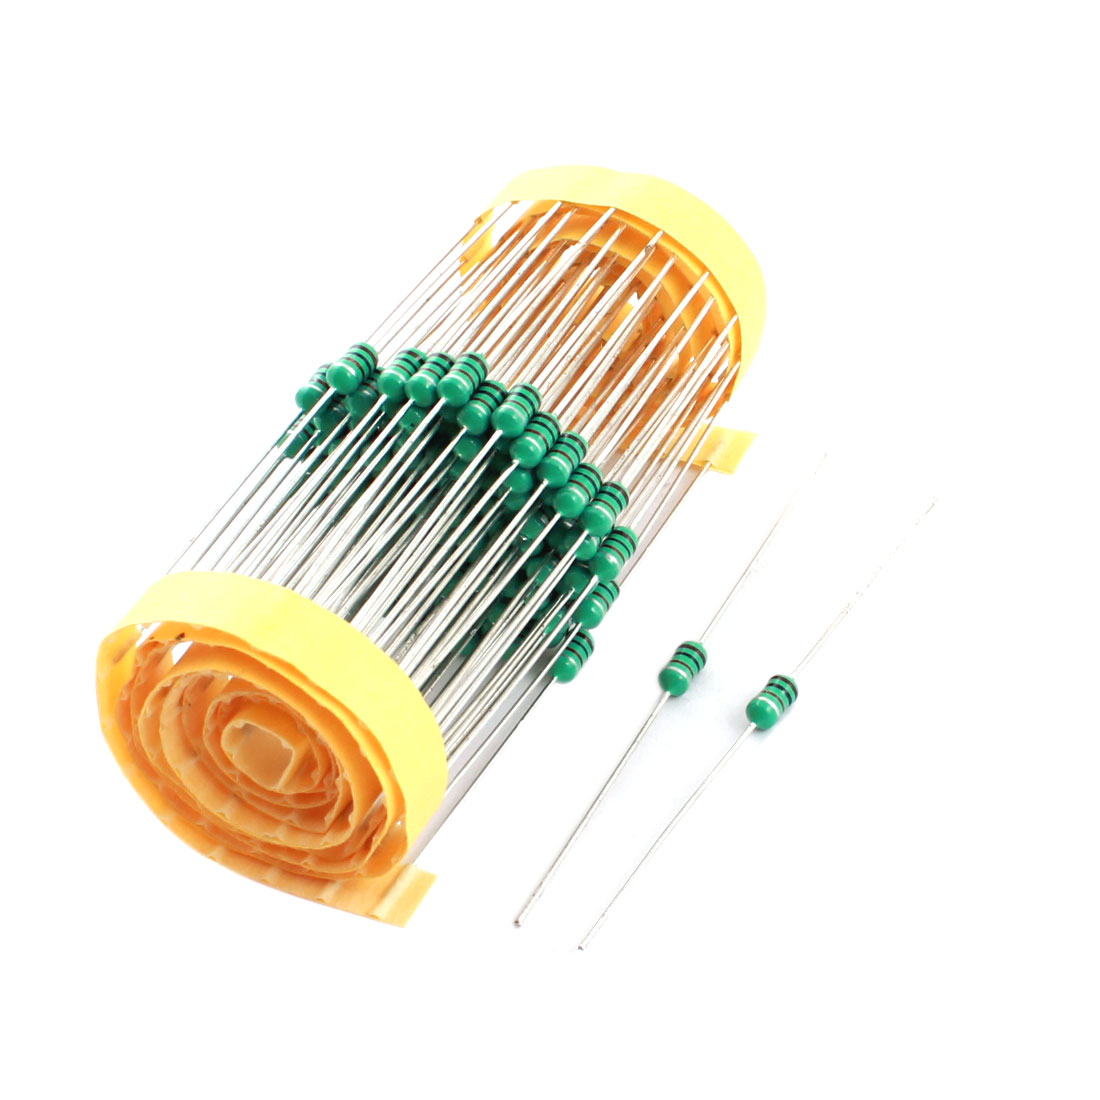 100Pcs Through Hole 1mH 3x7mm 10% 1/4W Power Axial Leaded Color Ring Inductors for PCB Board